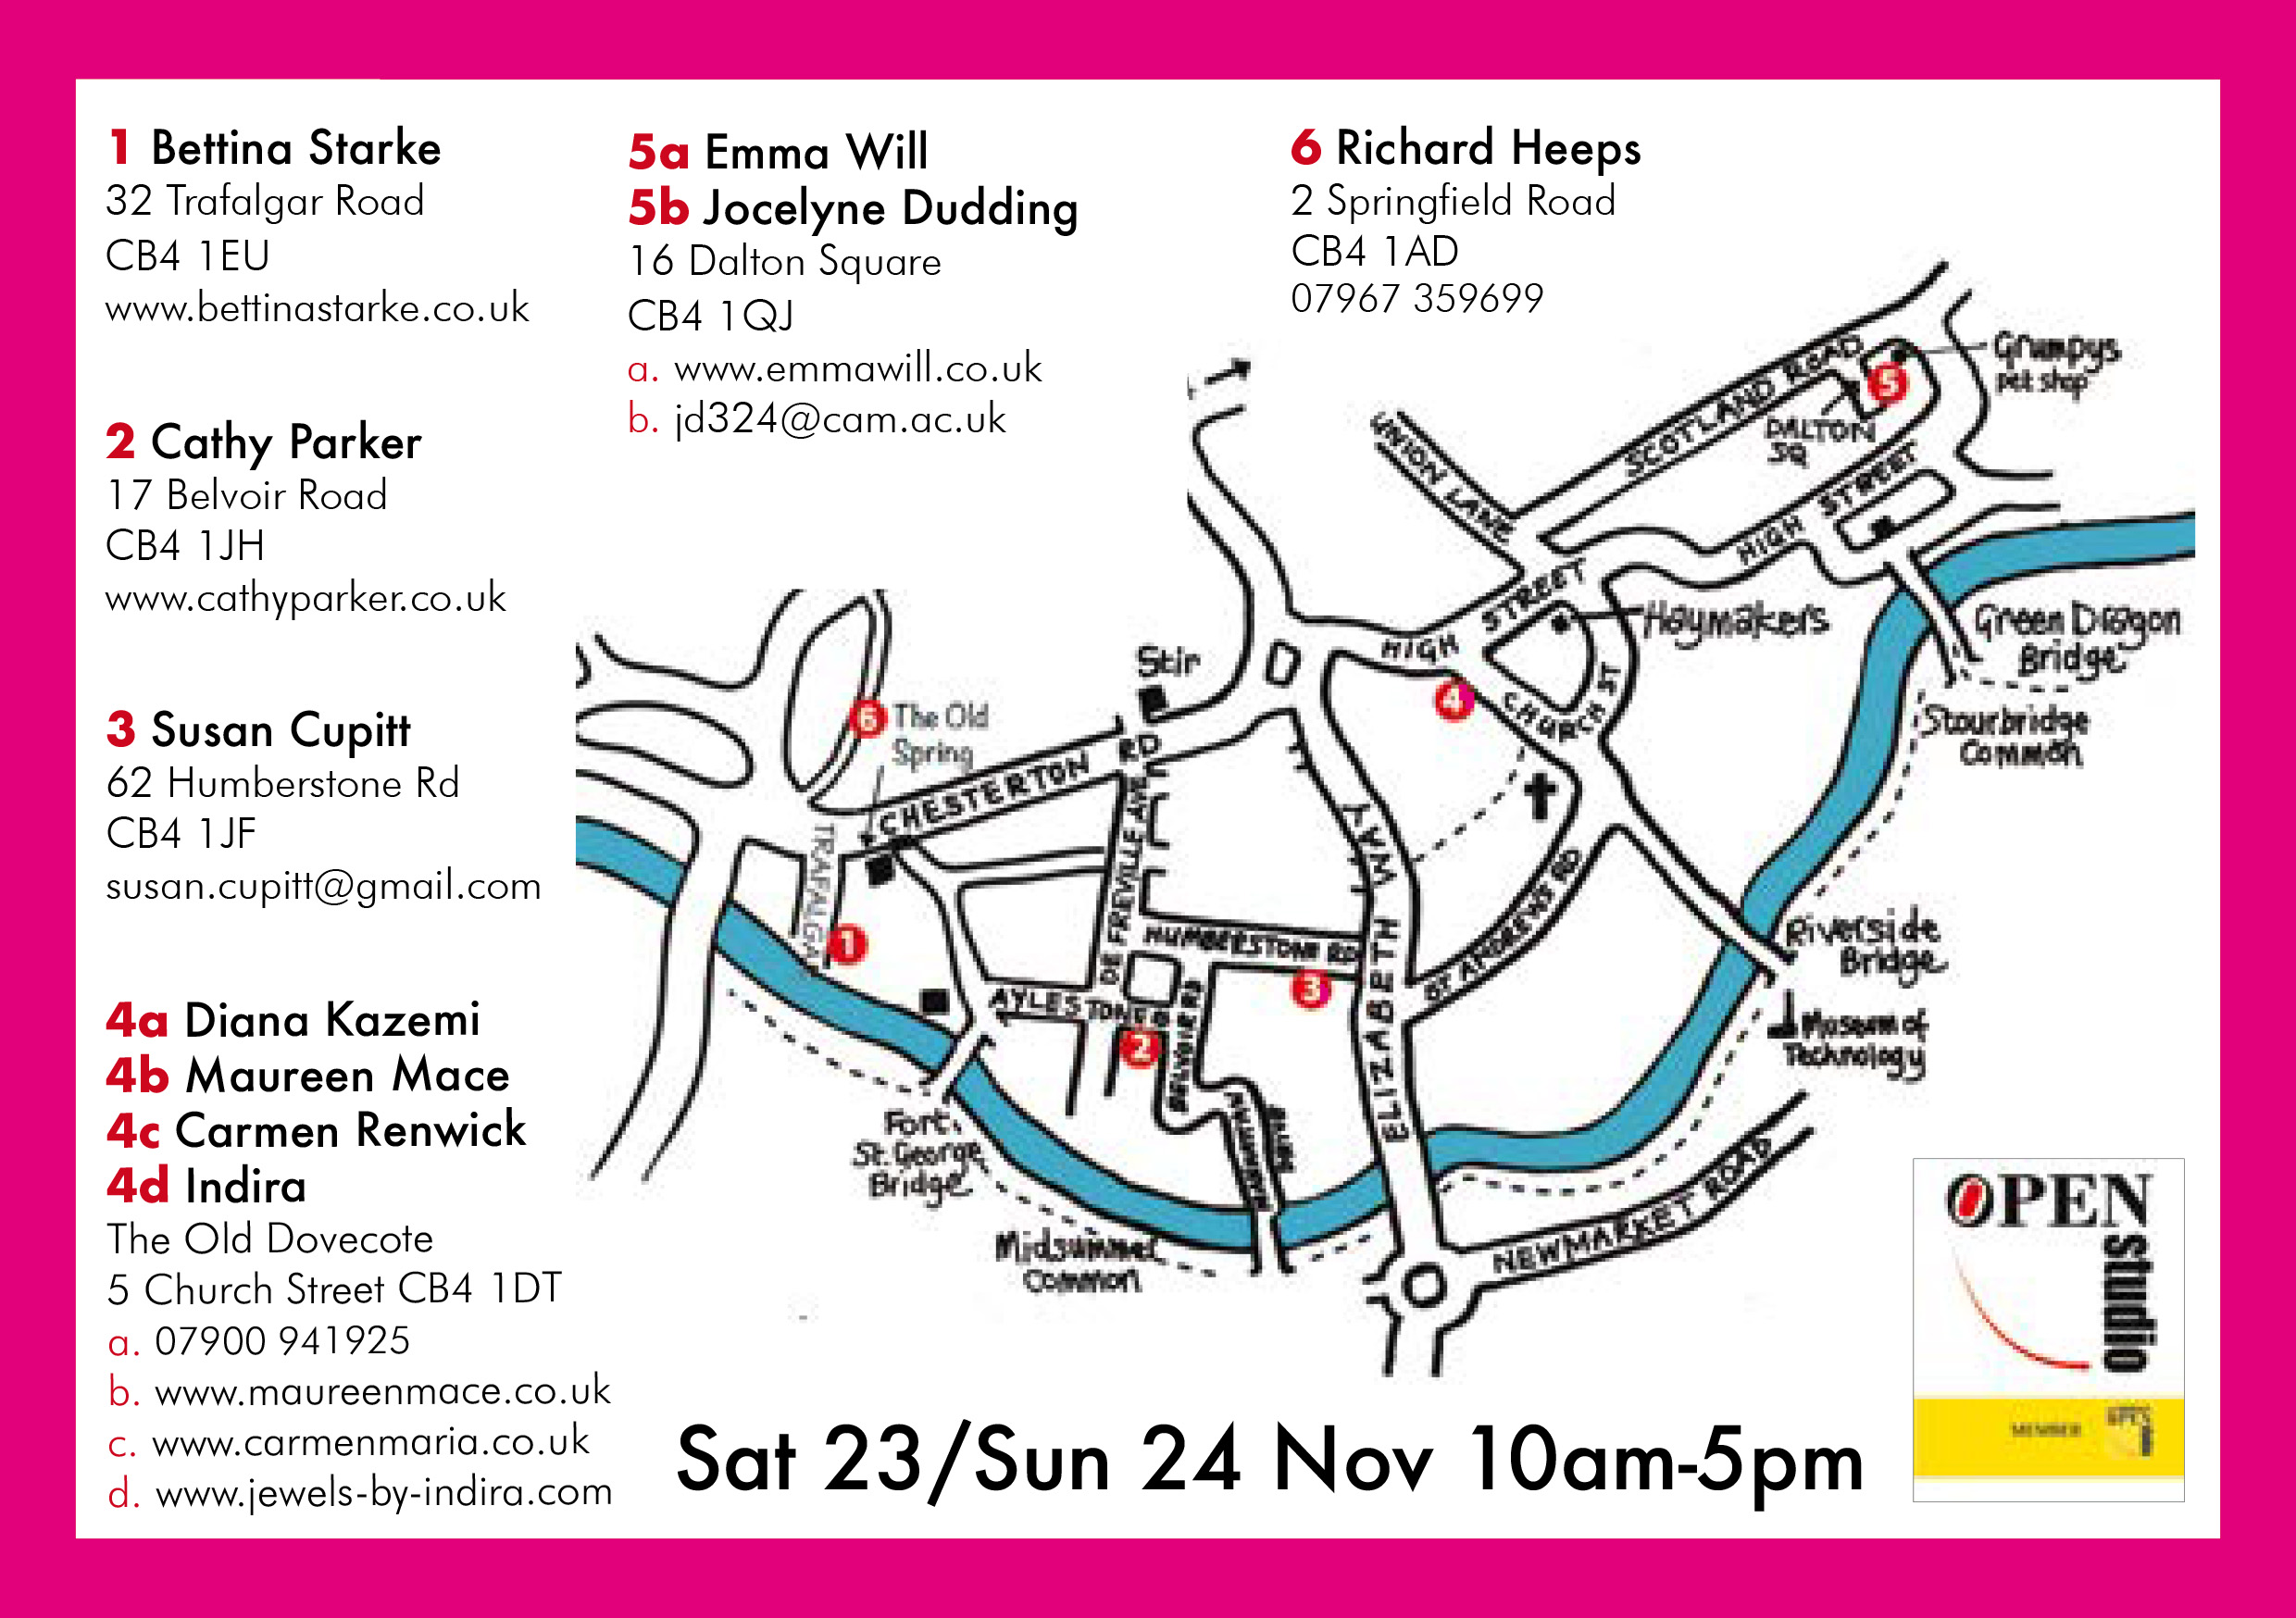 Cambridge Winter Open Studio Art Trail Map